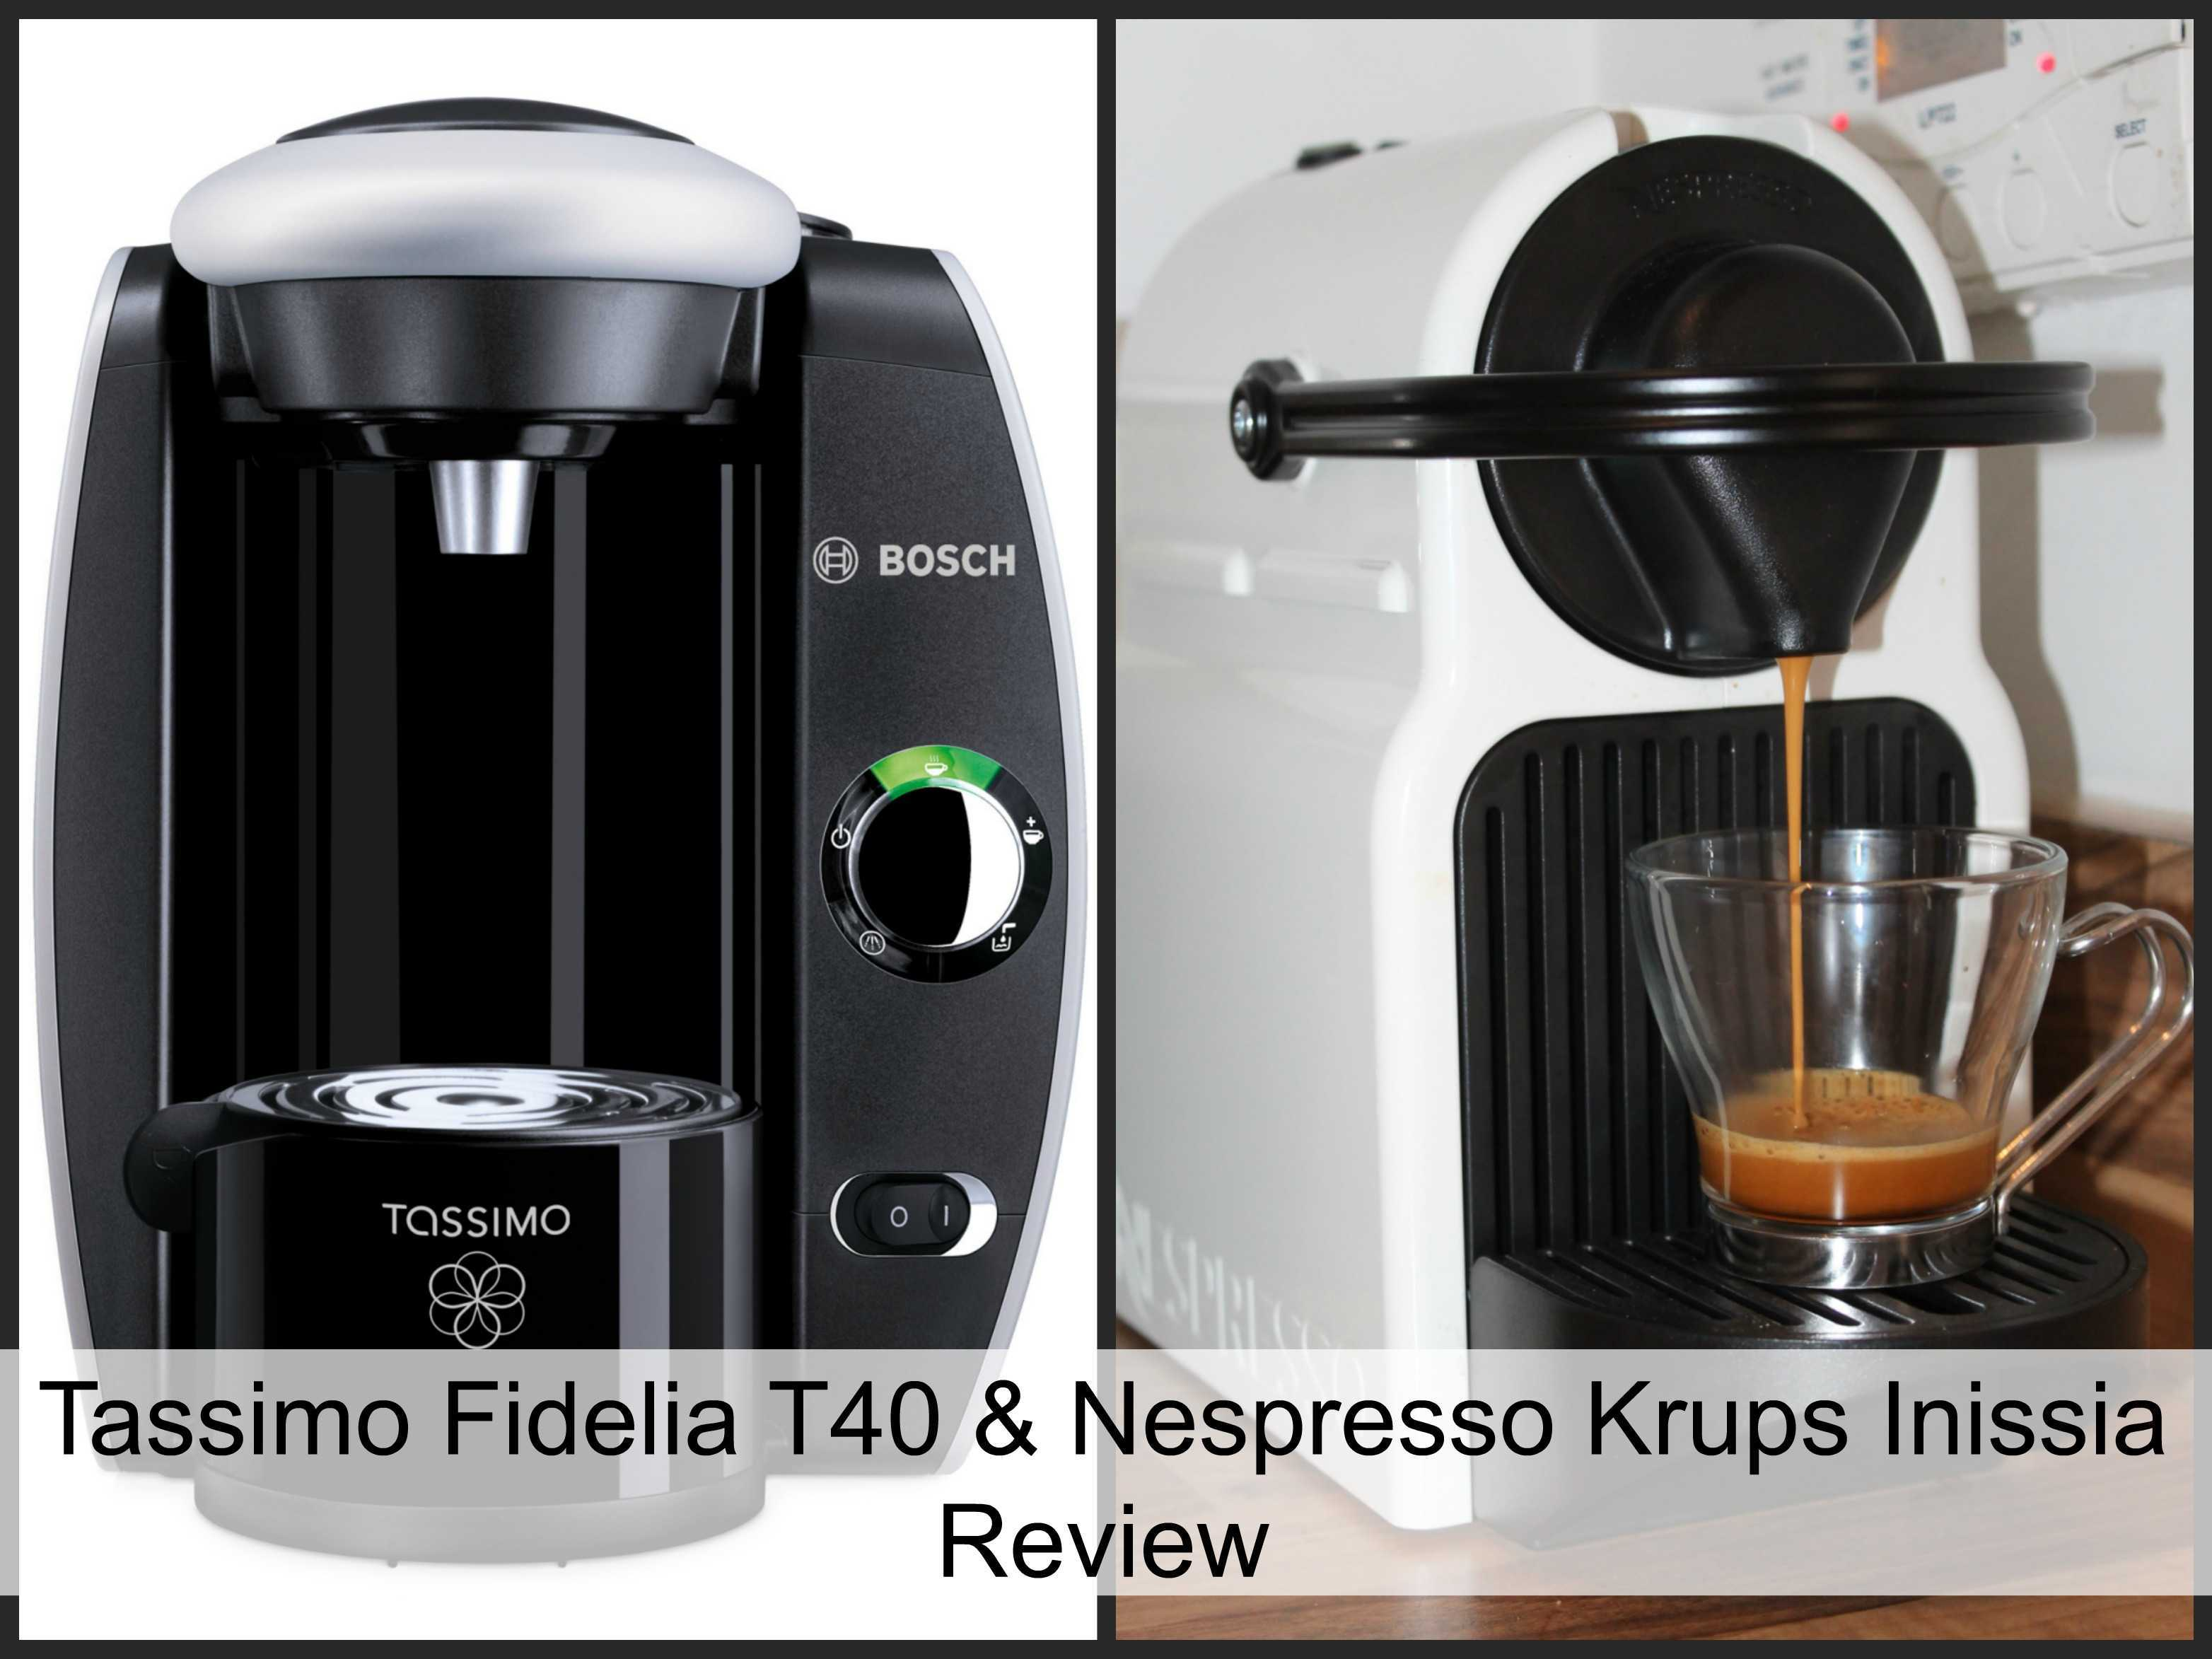 Tassimo Fidelia T40 & Nespresso Krups Inissia Coffee Machine Review - My Life, My Passion